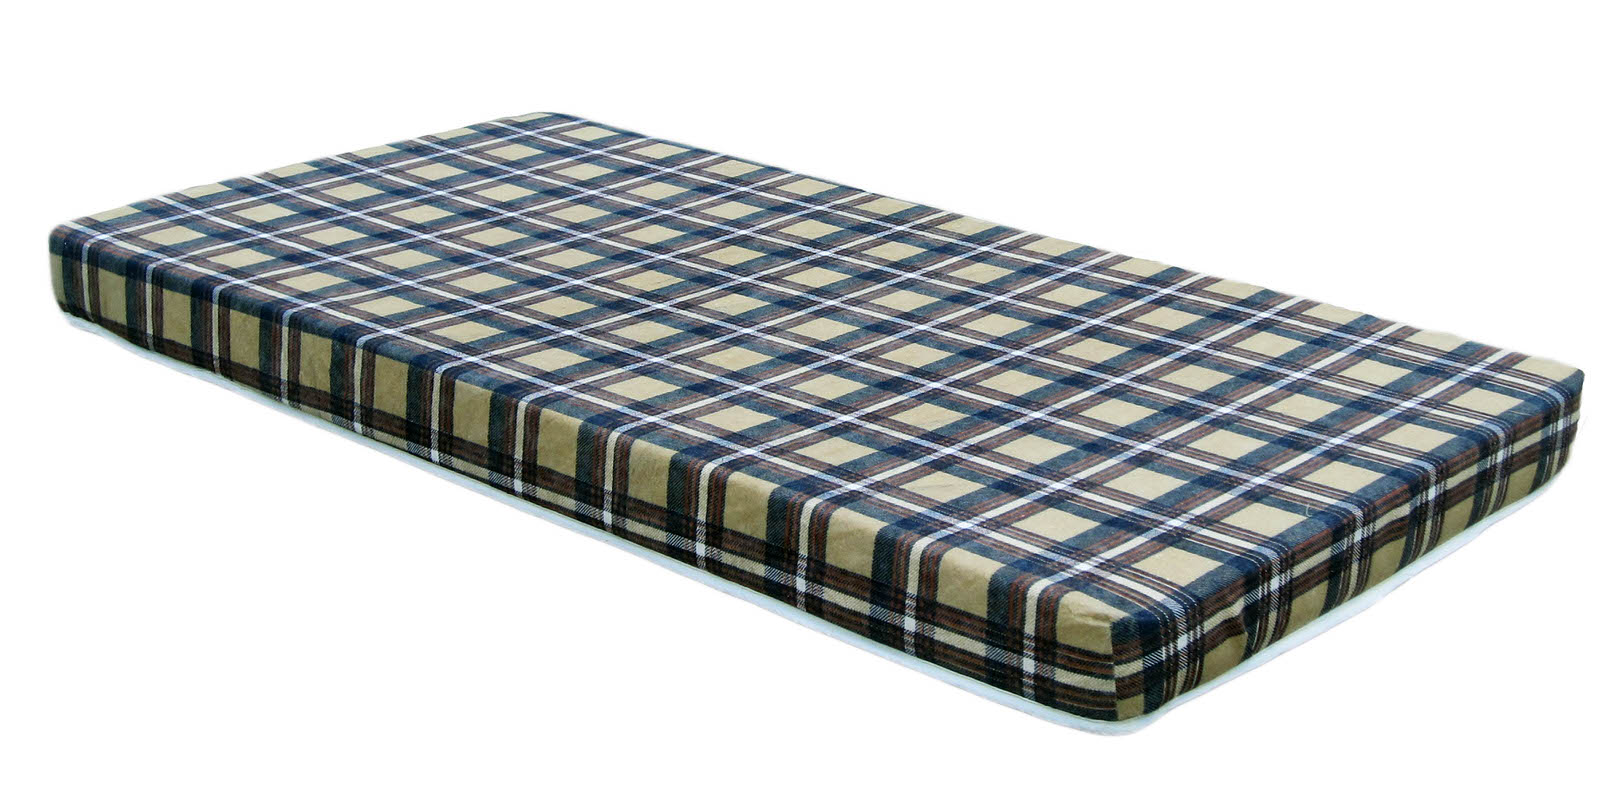 5 5 Inch Bunk Dorm Mattress By Innerspace